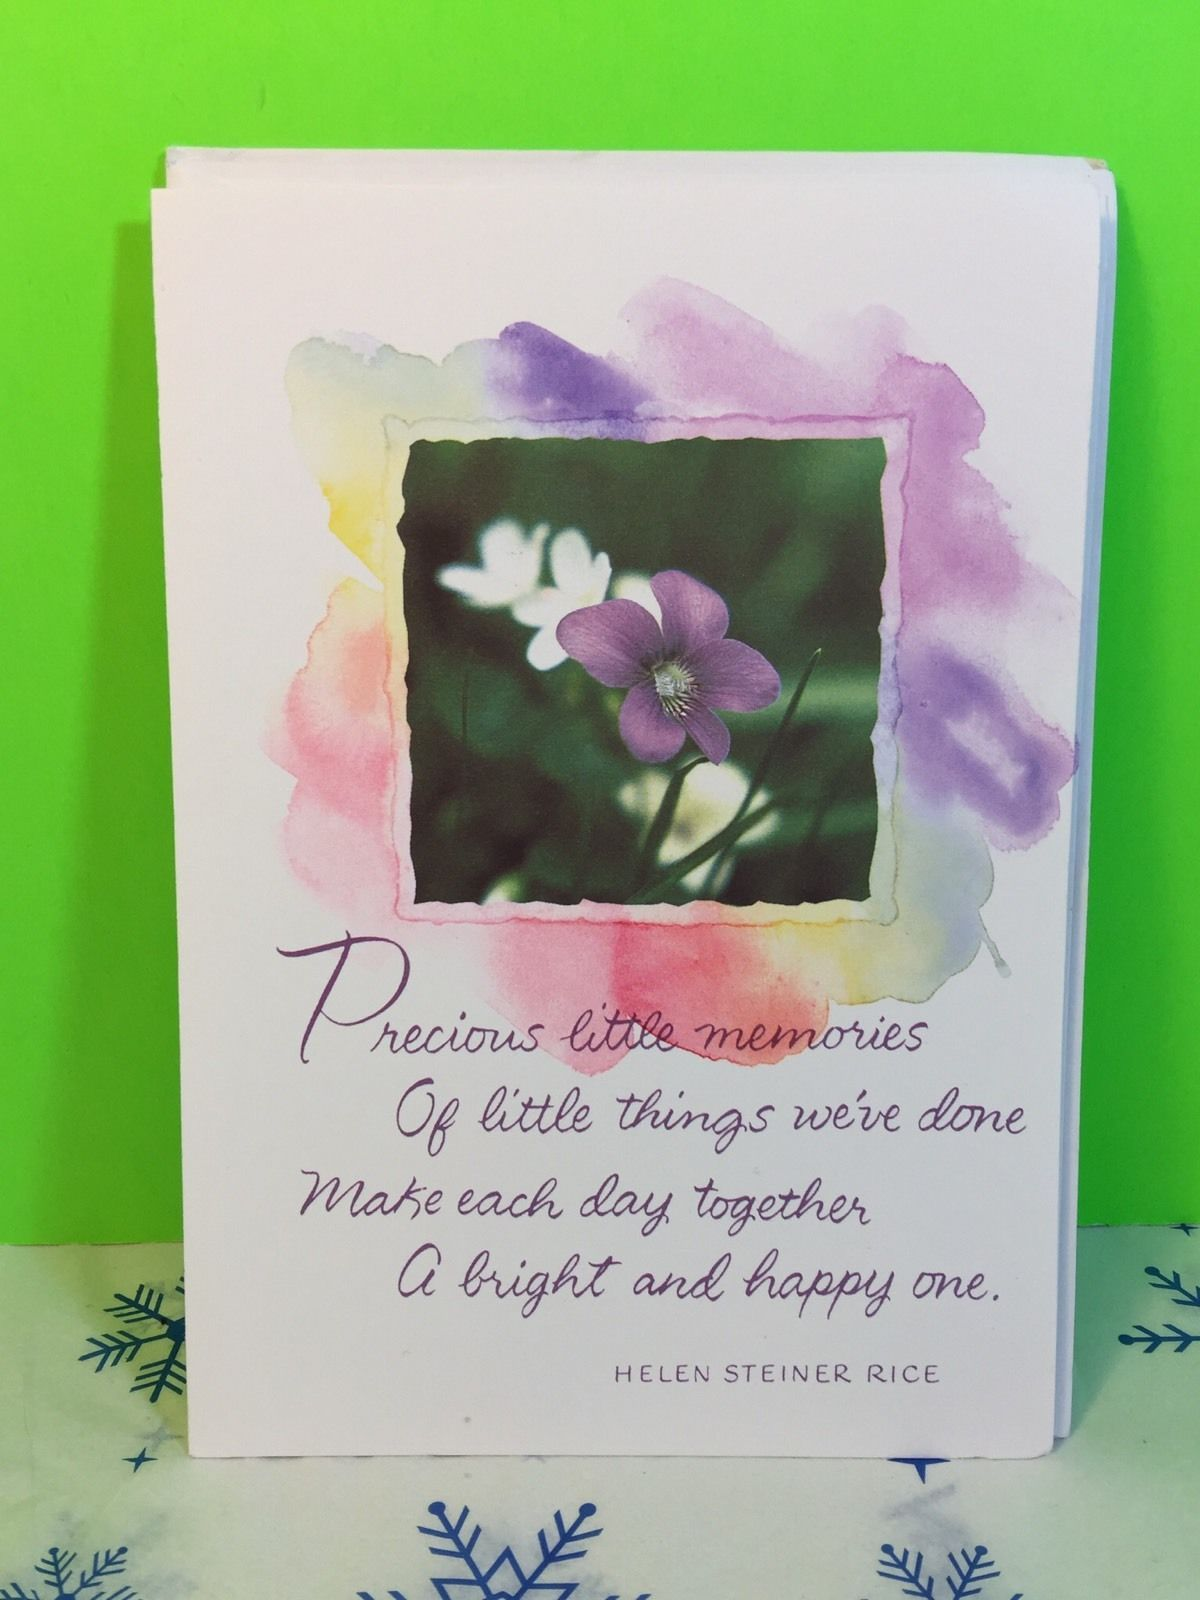 Lot of 3 gibson greeting inc new greeting cards with envelopes lot of 3 gibson greeting inc new greeting cards with envelopes ebay kristyandbryce Choice Image